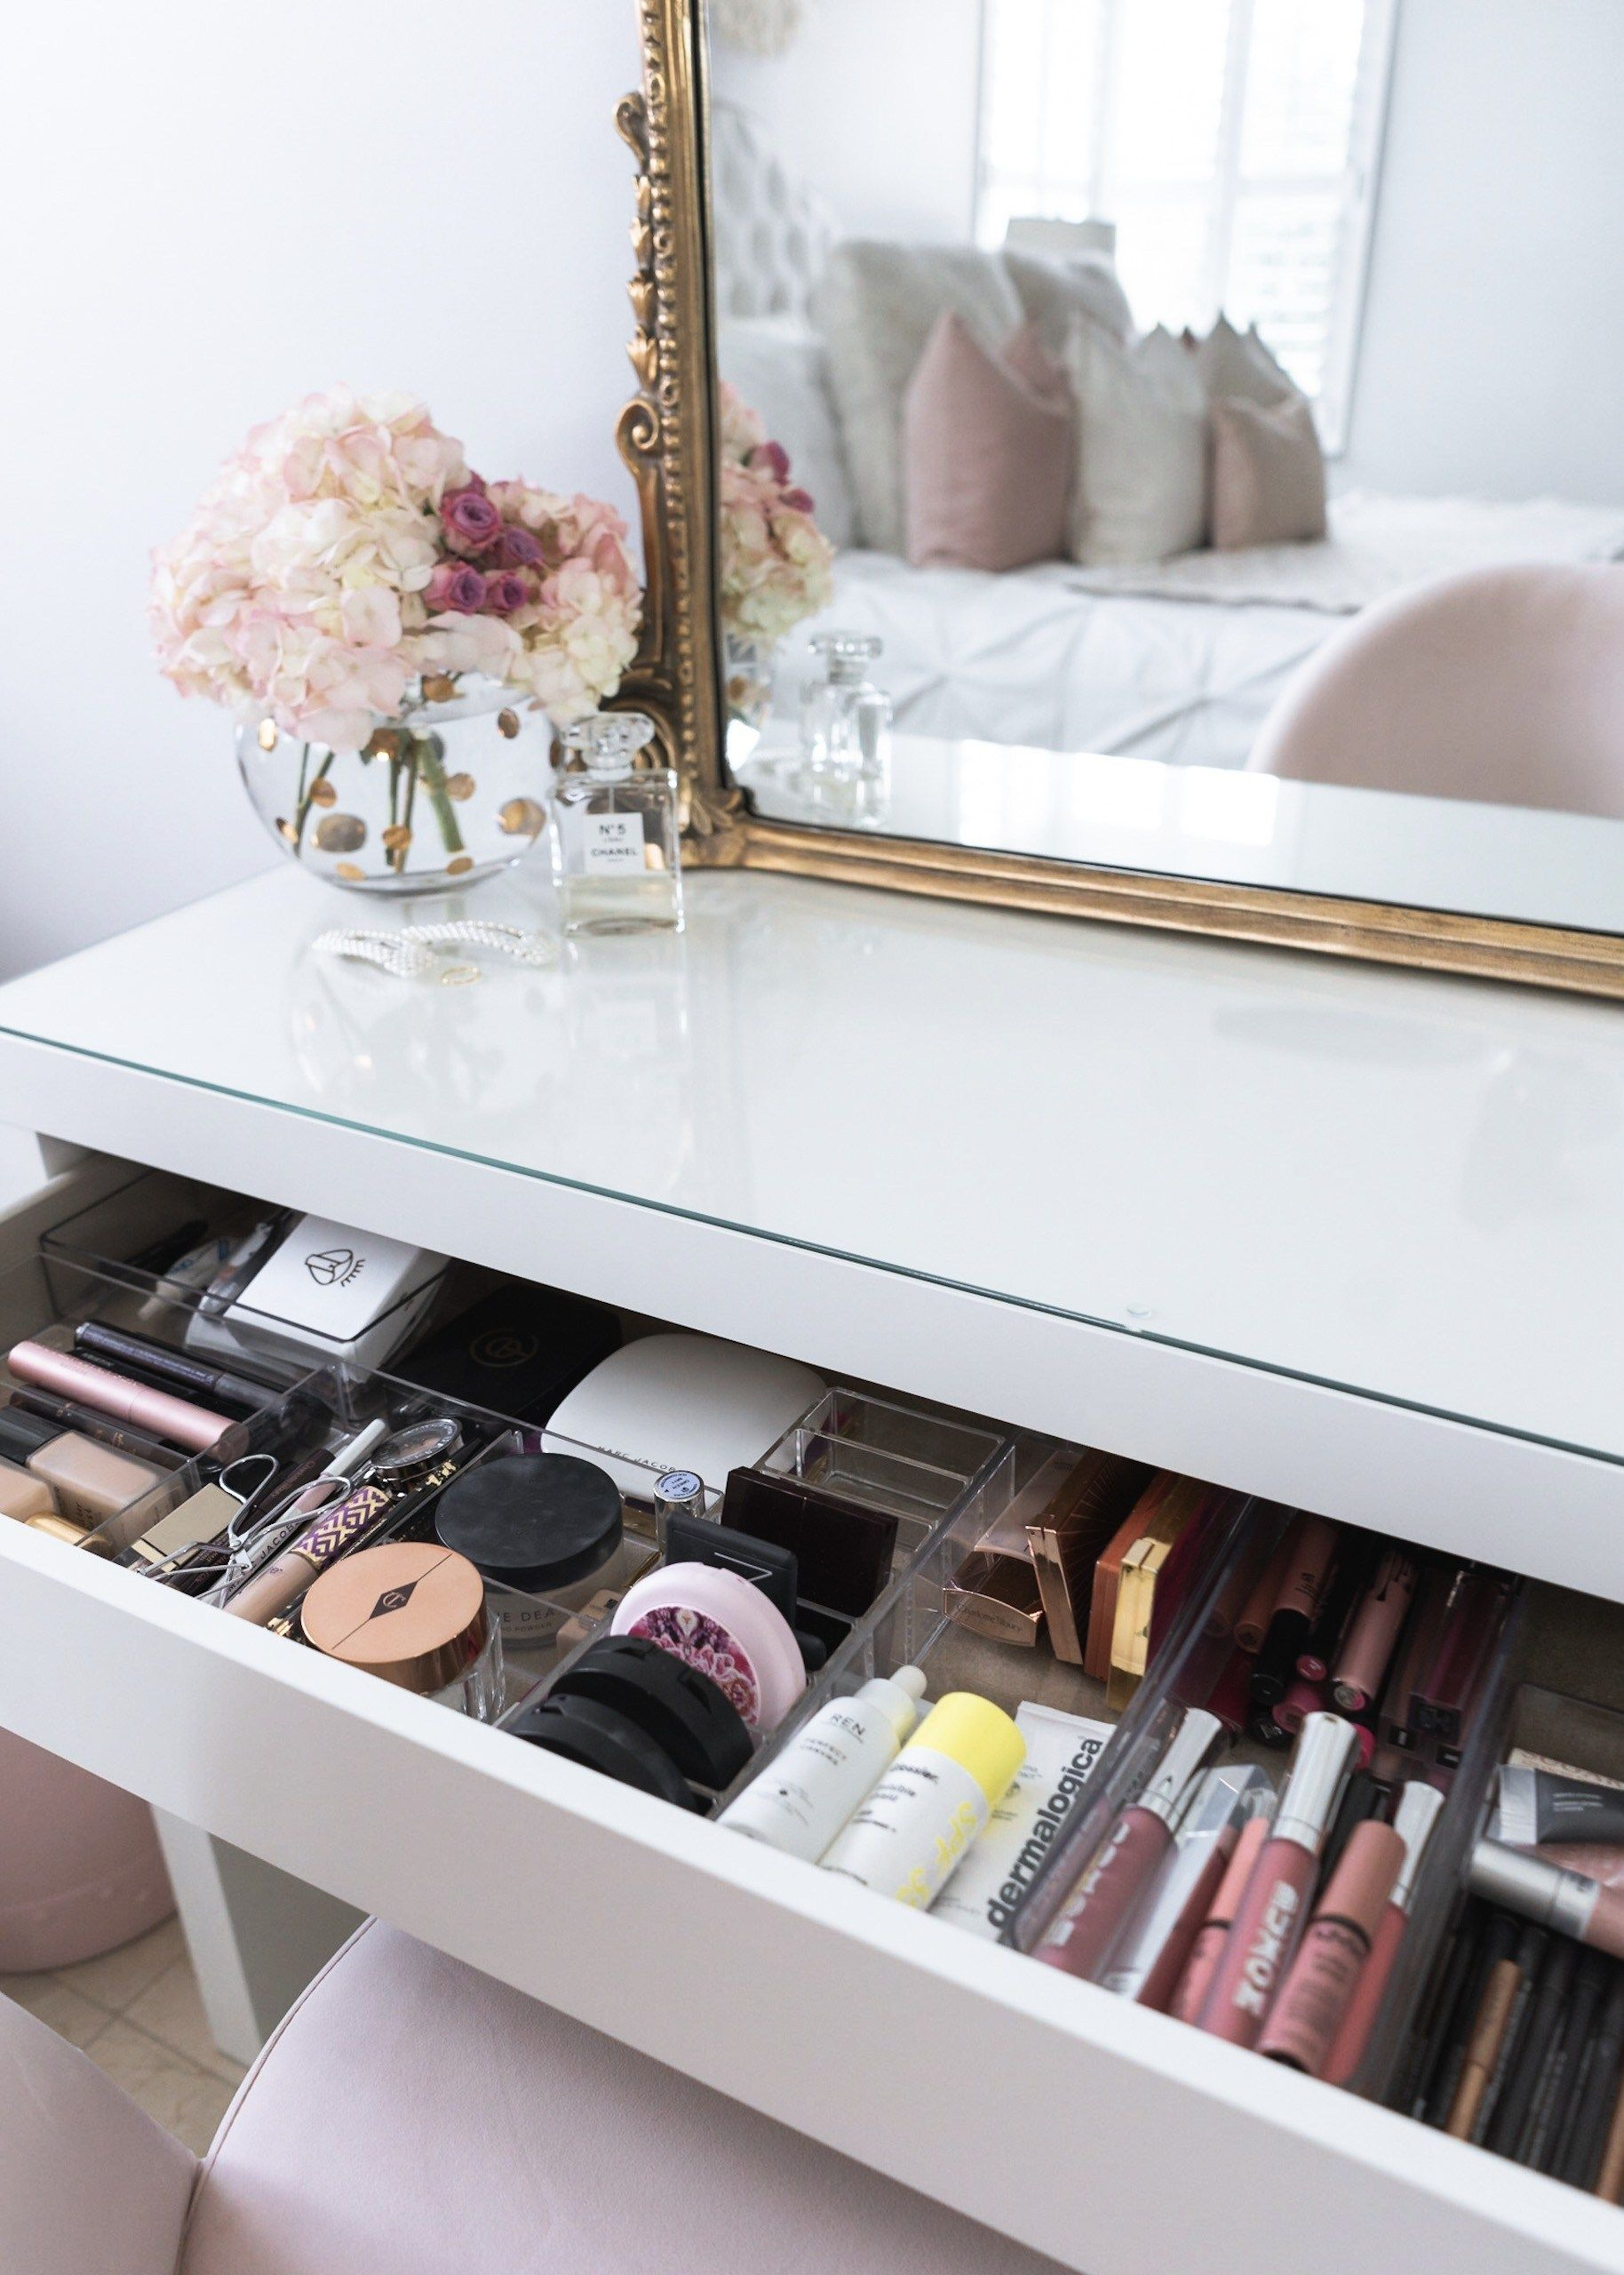 How I Organize My Makeup In My Vanity The Fancy Things Malm Dressing Table Ikea Malm Dressing Table Makeup Table Vanity